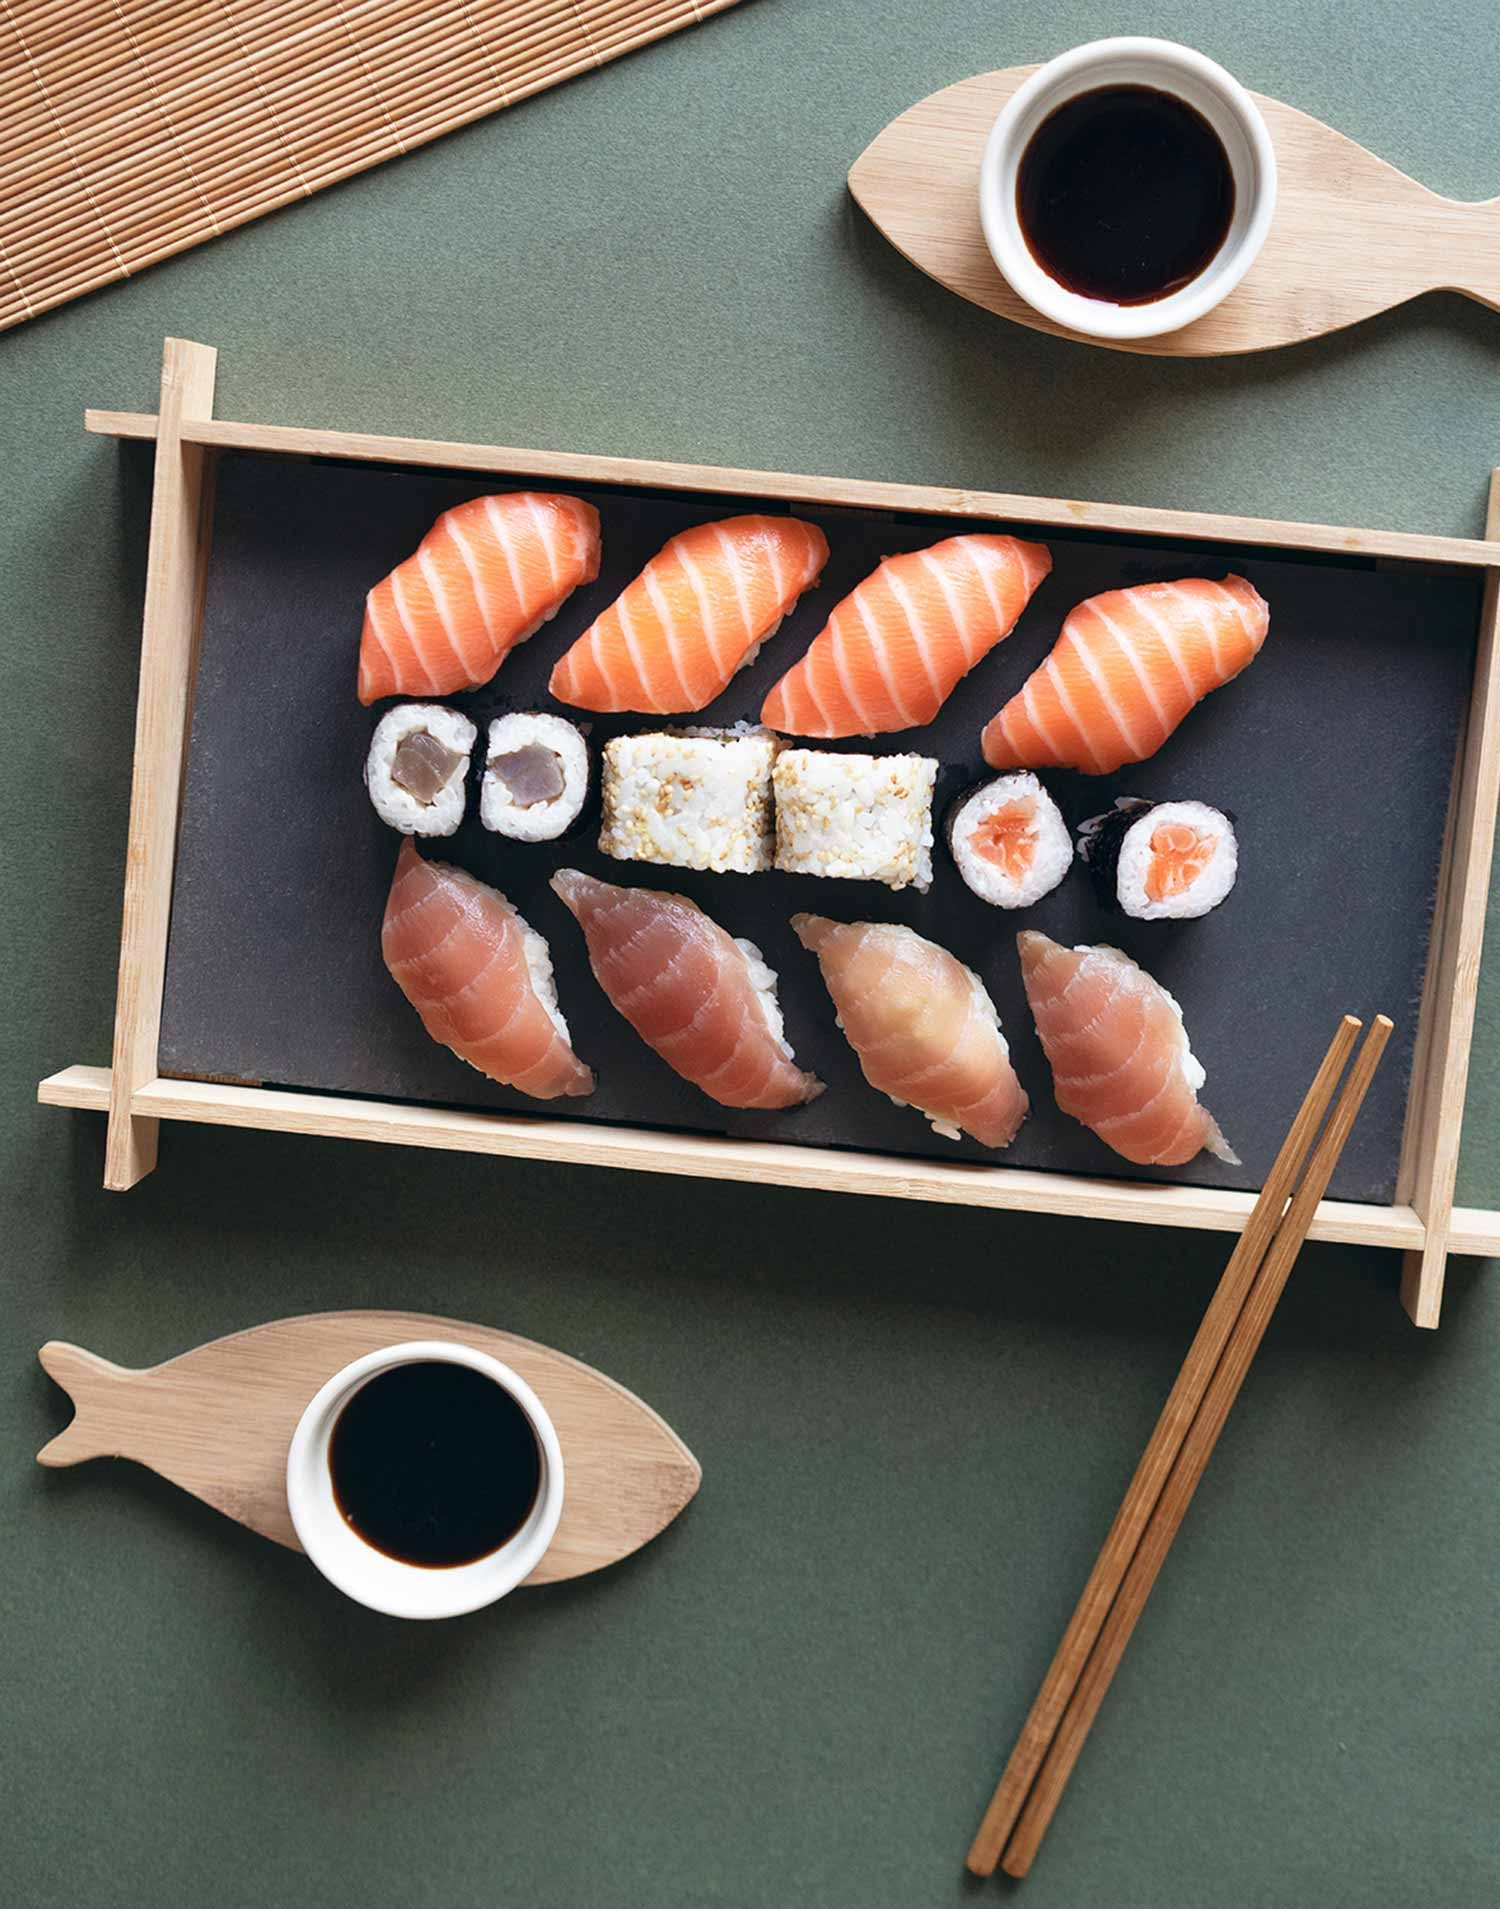 Fish sushi set for 2